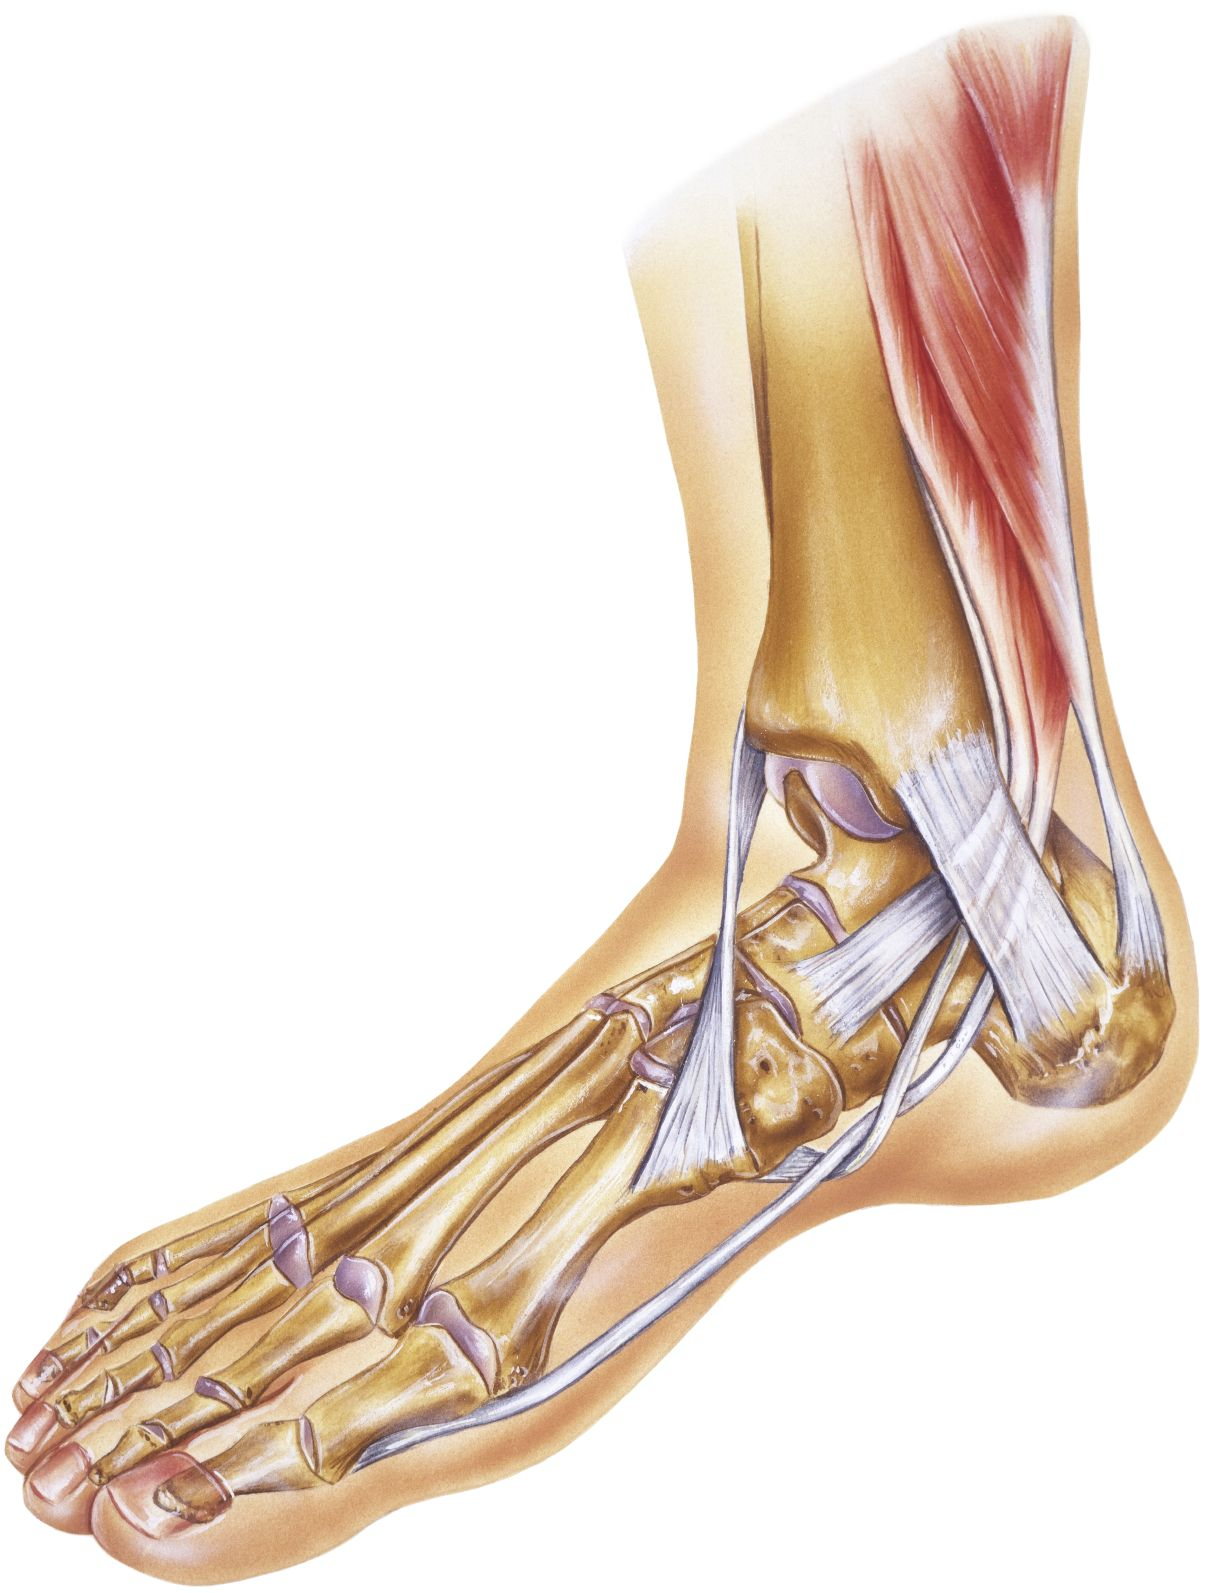 Posterior tibial tendonitis is defined as inflammation of the ...